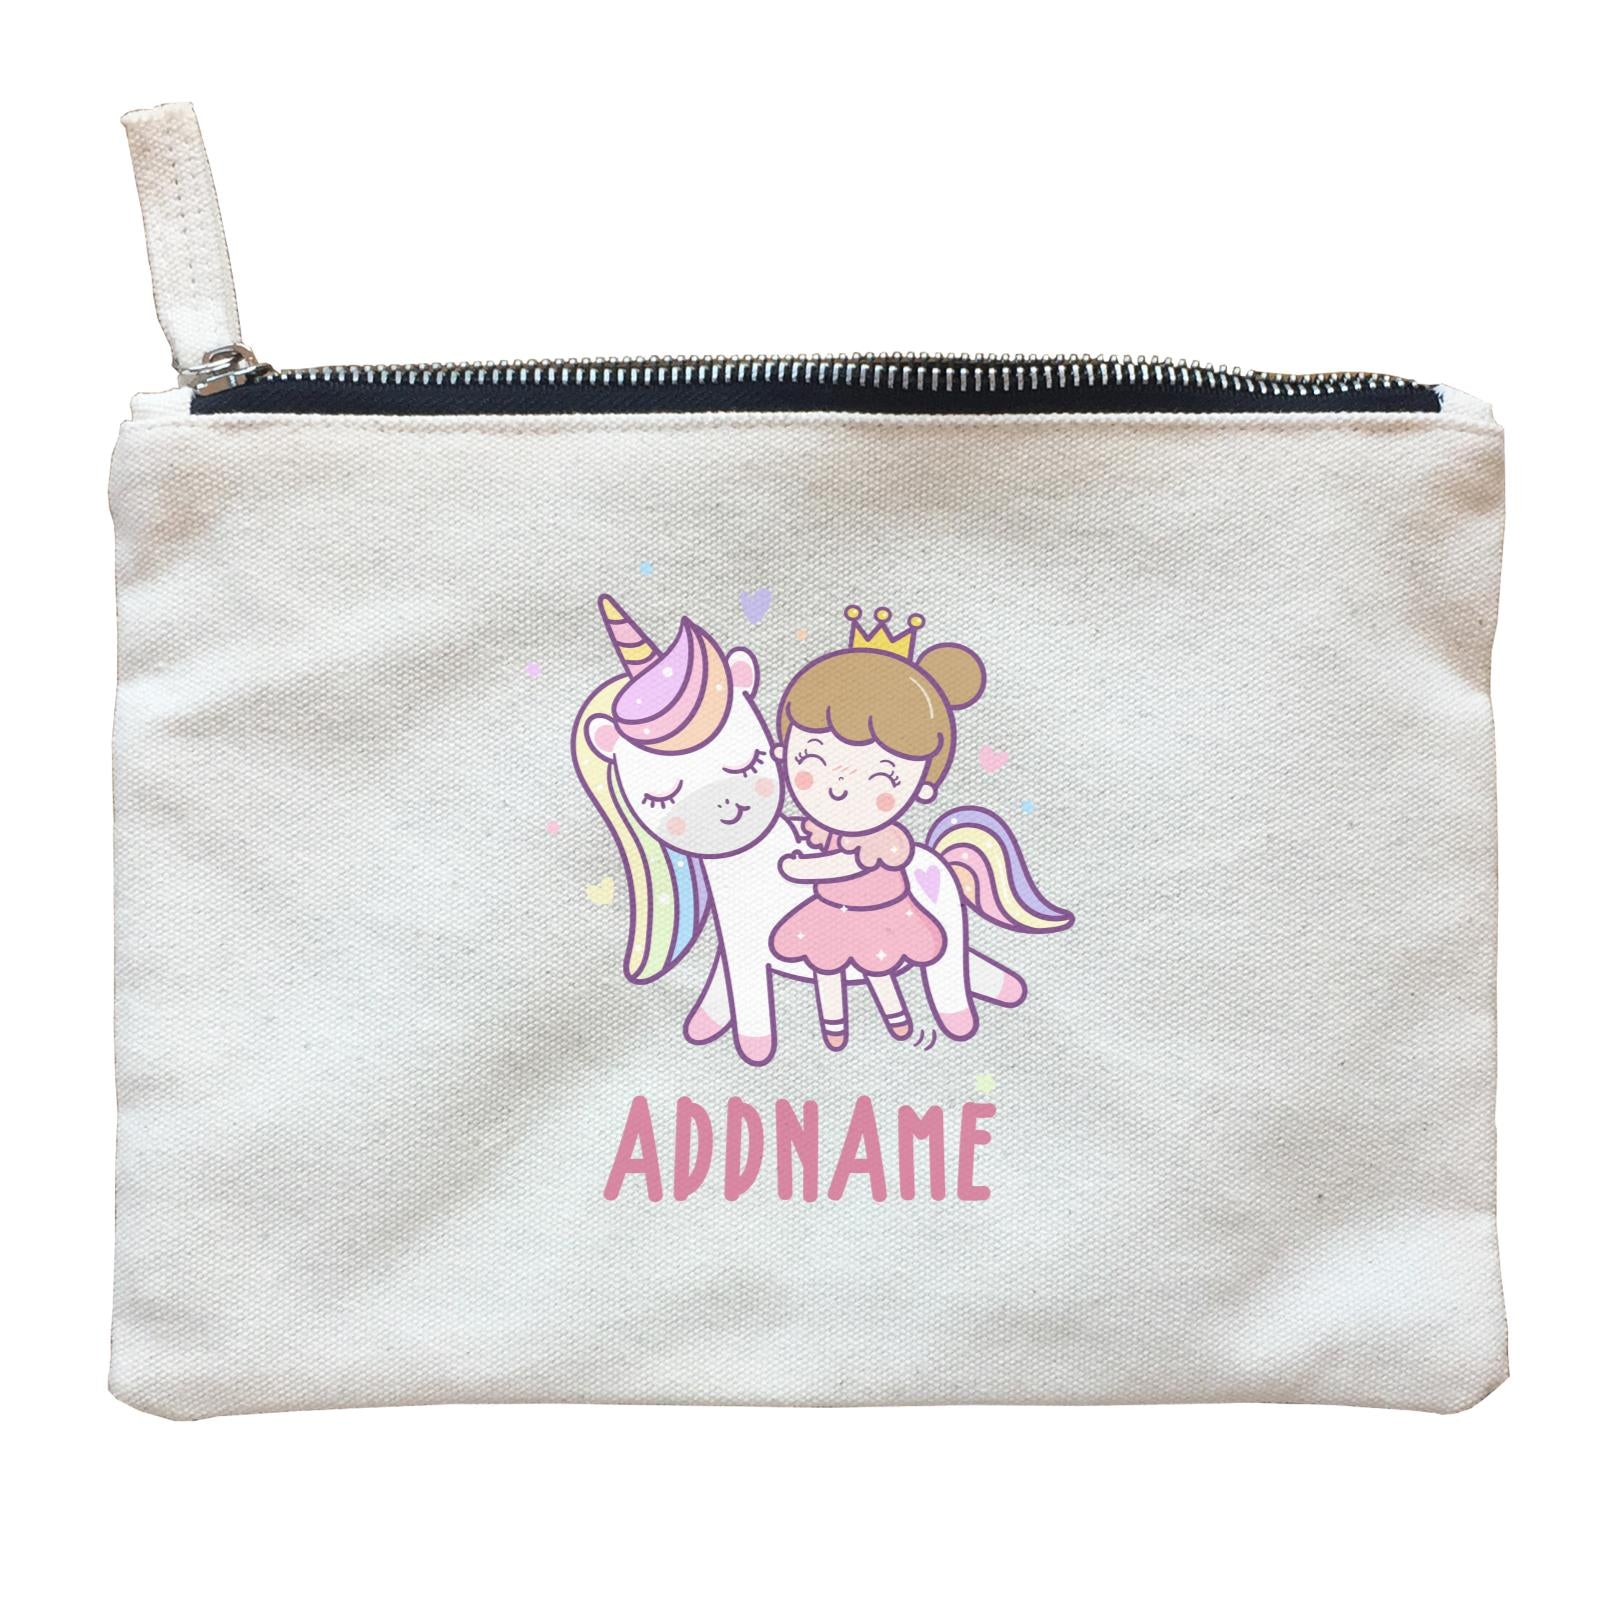 Unicorn And Princess Series Cute Unicorn With Princess Addname Zipper Pouch